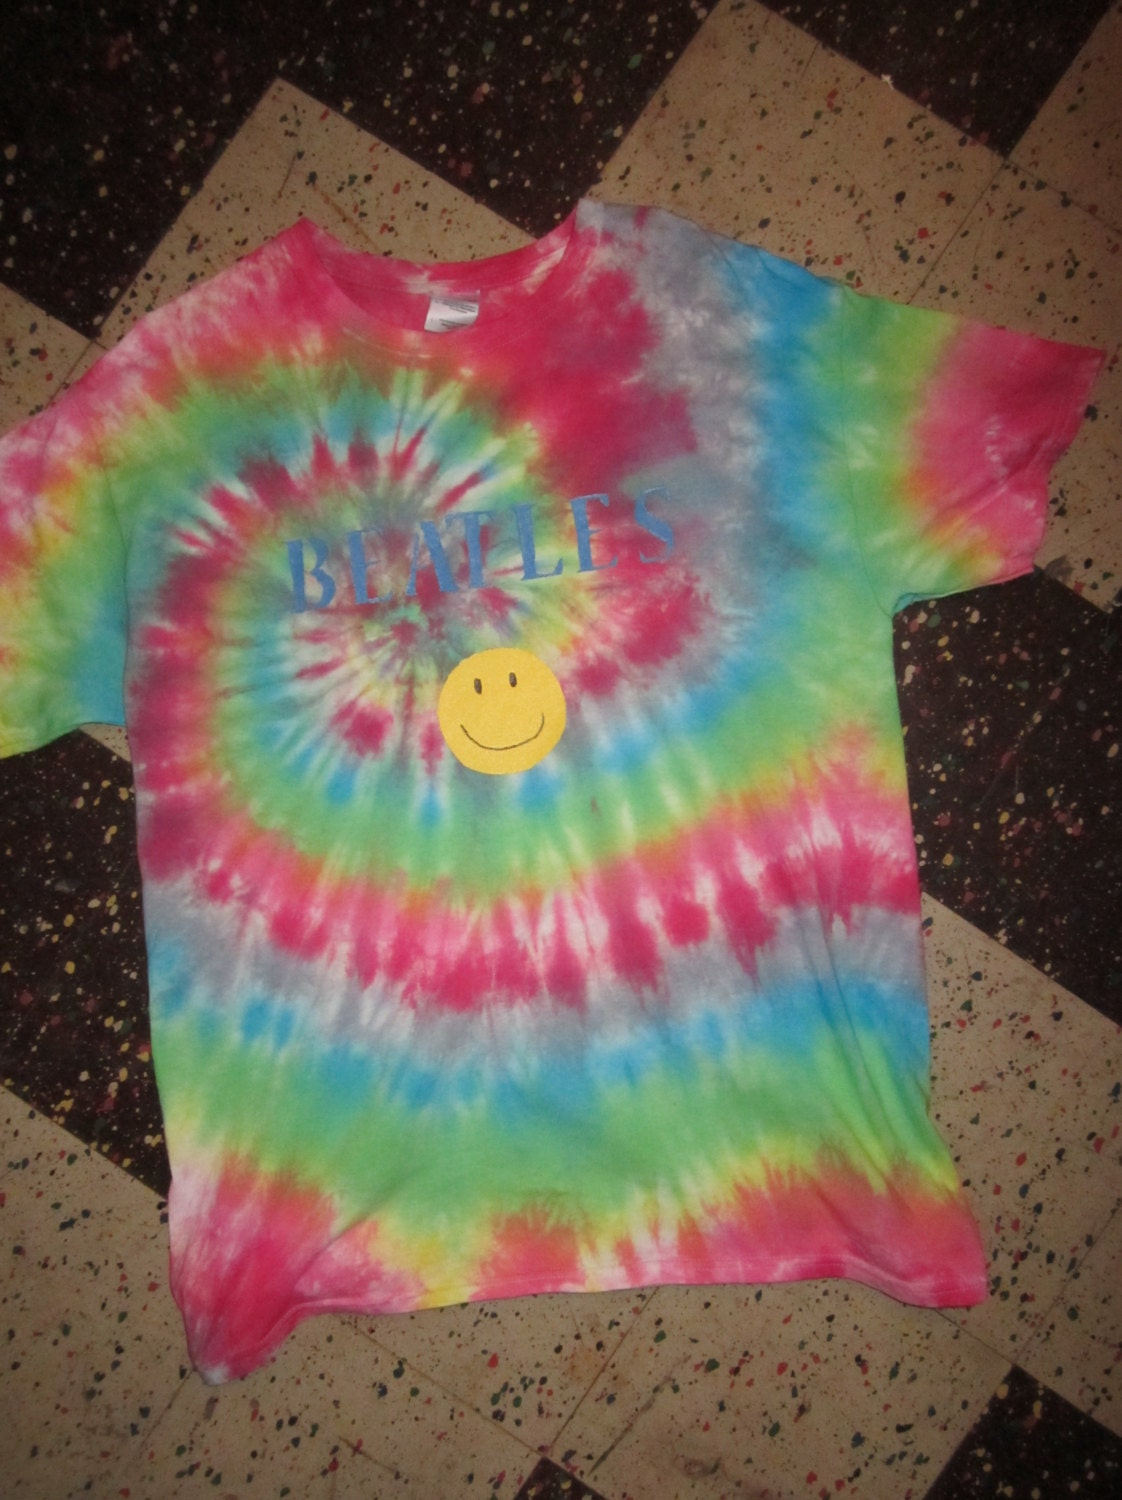 beatles tie dyes size large 4 different styles